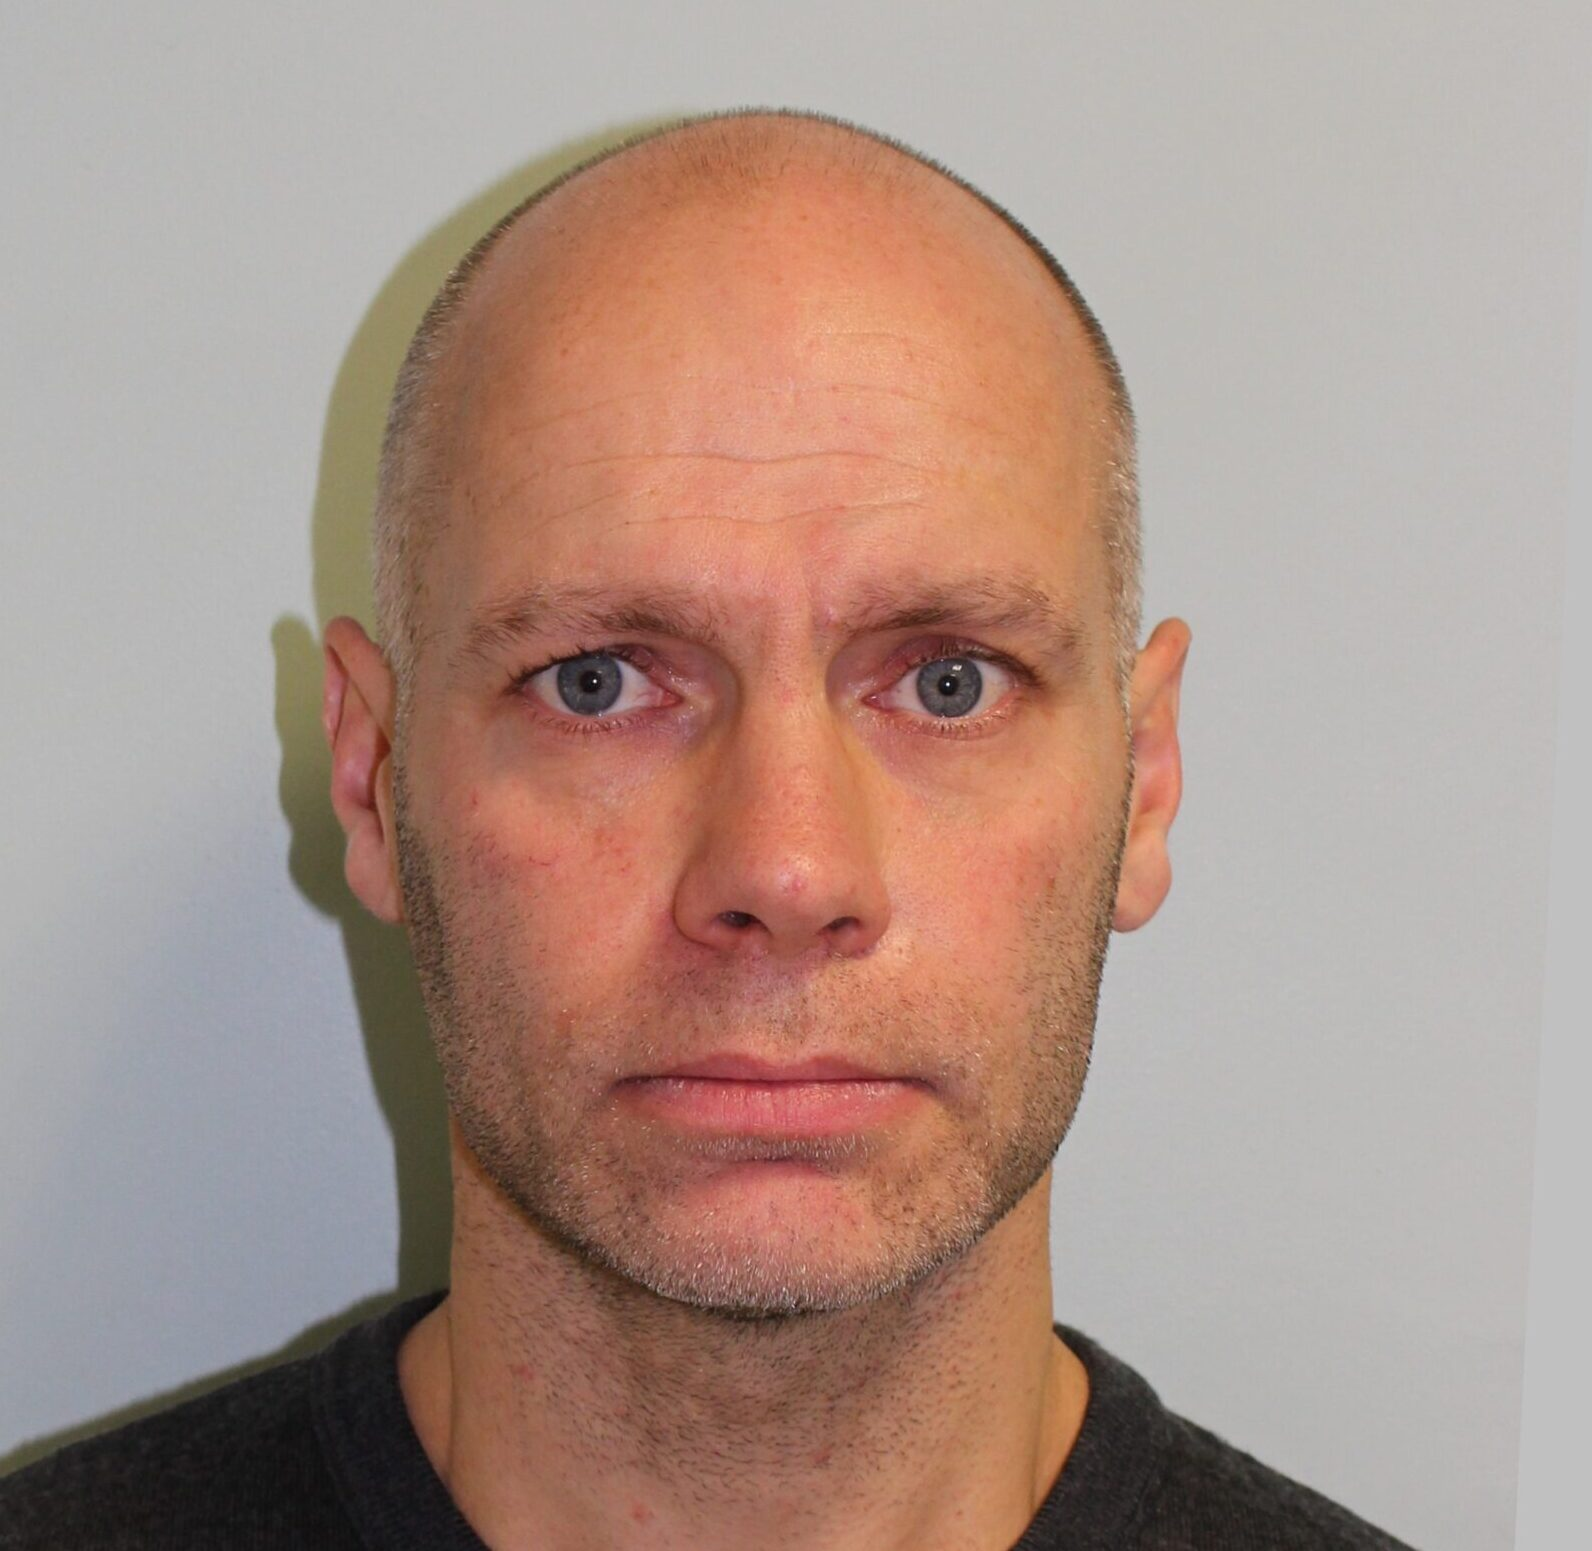 Sobbing sports teacher jailed for sexual relationship with pupil